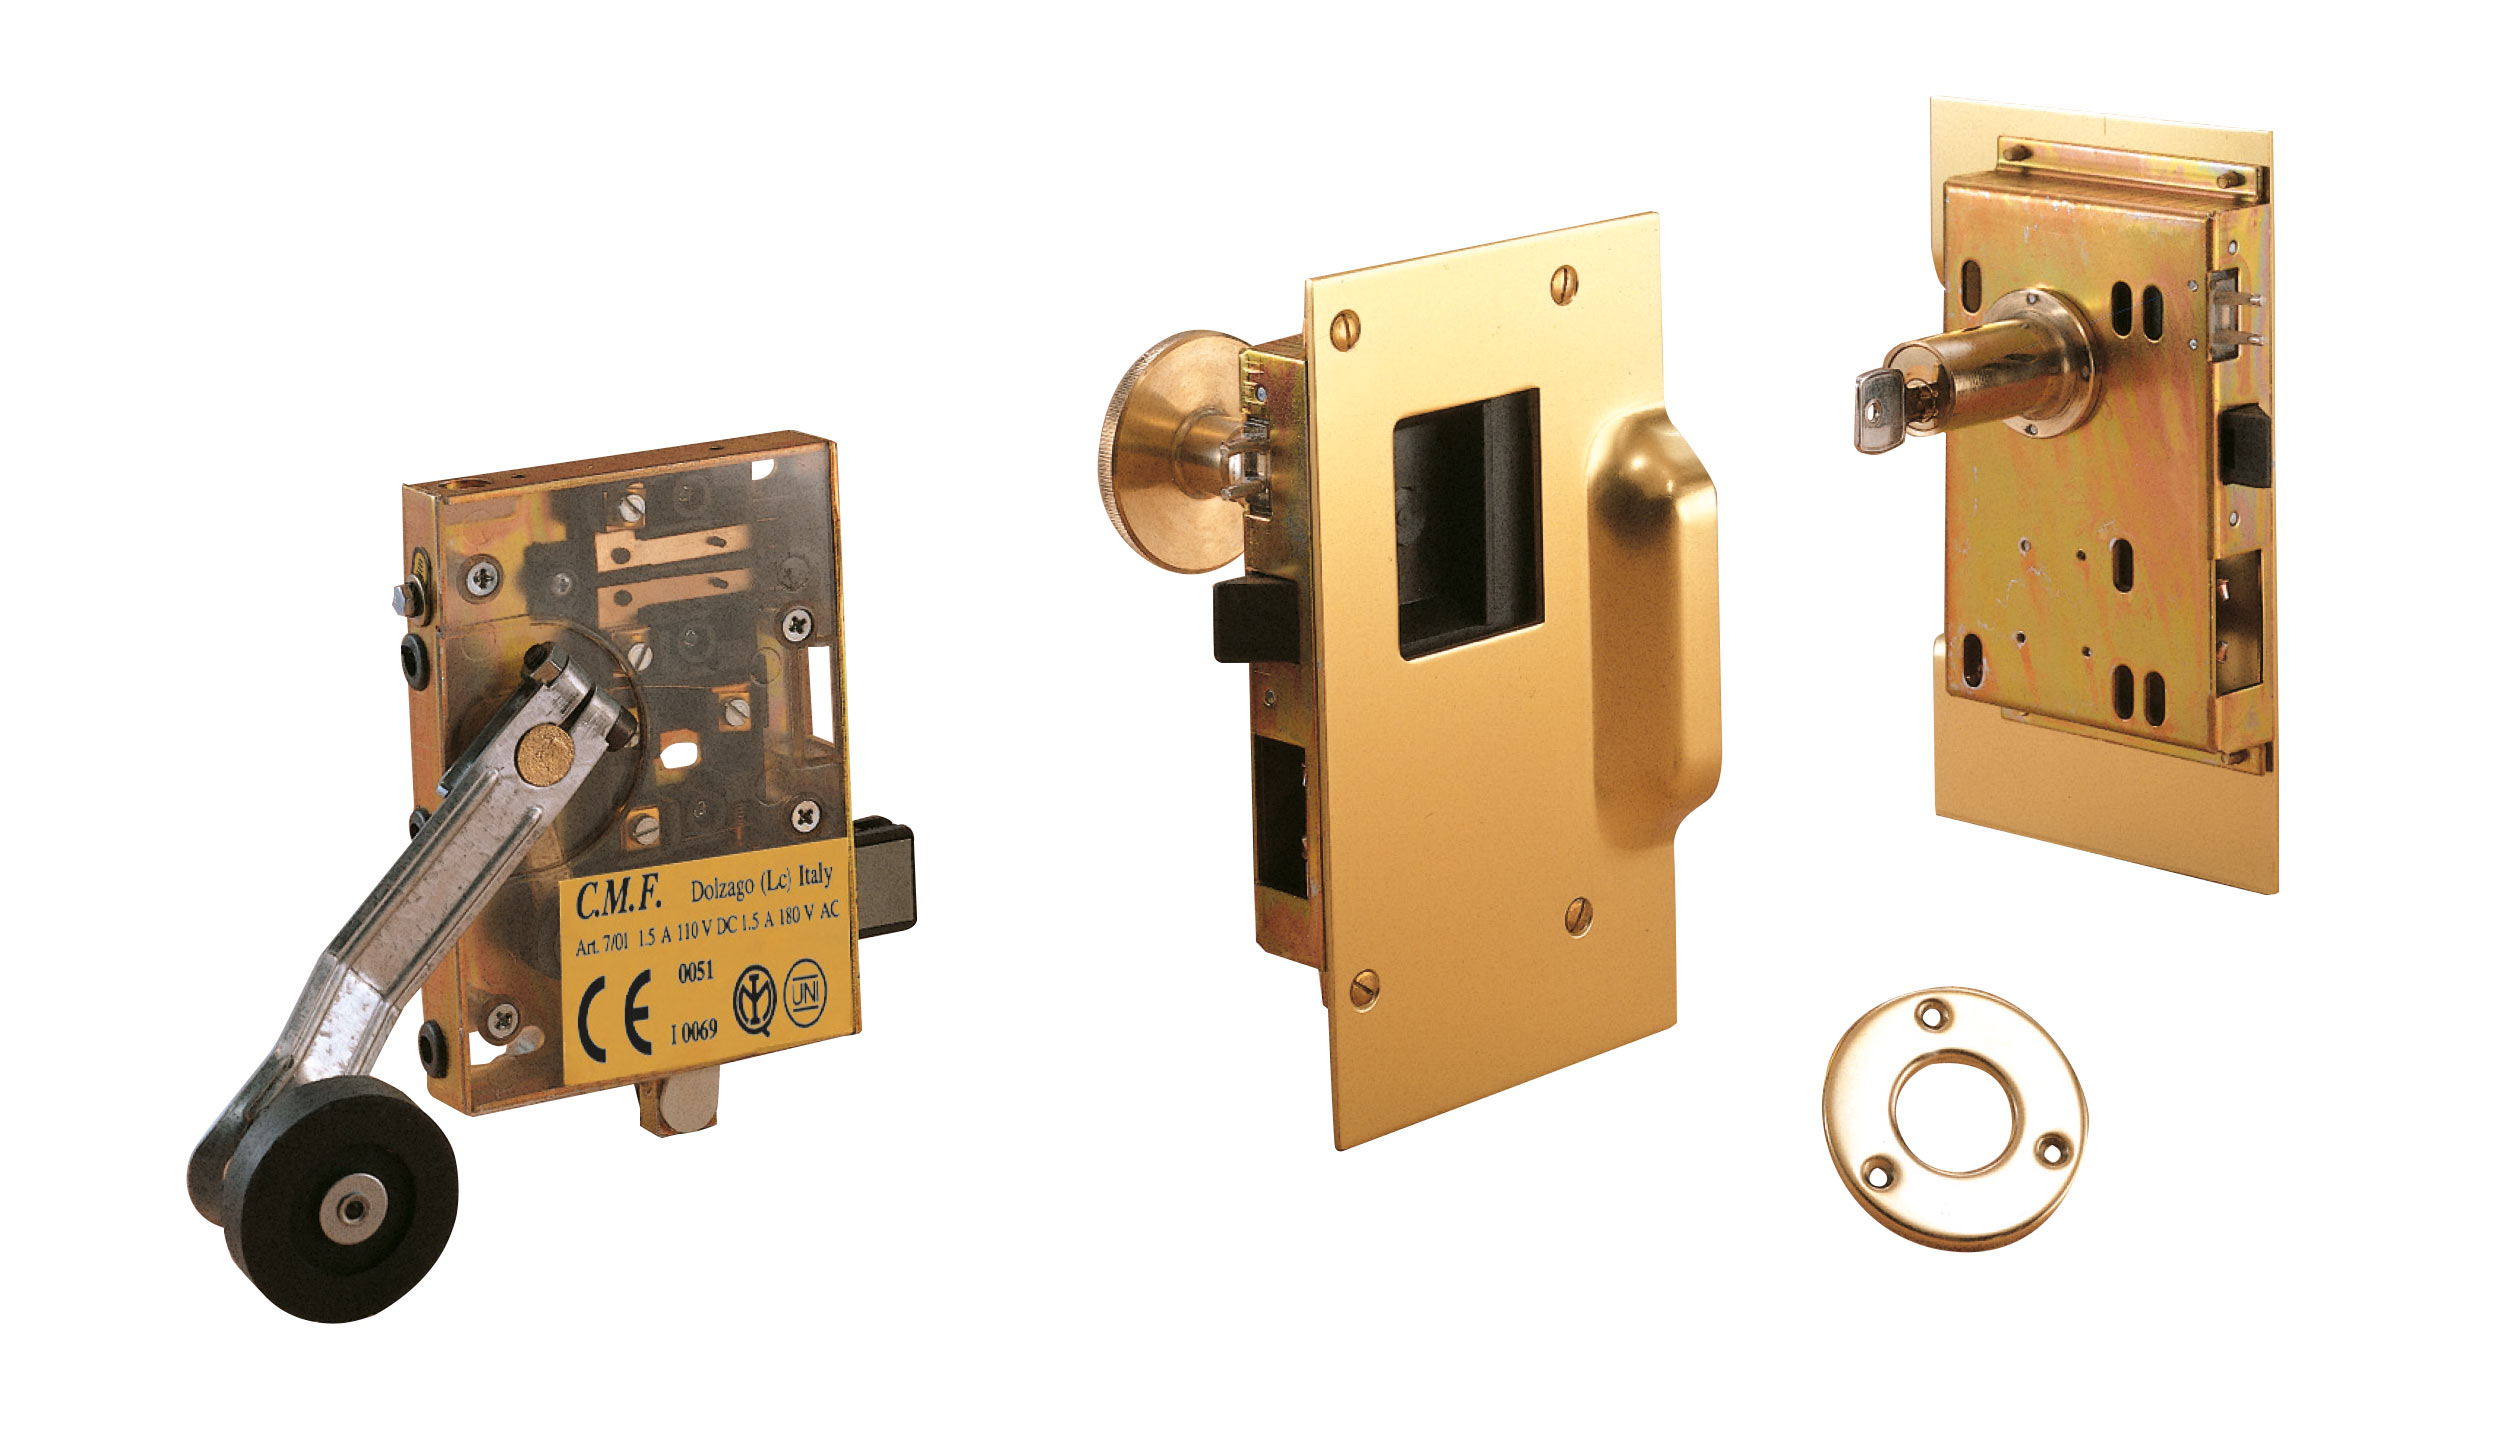 Manual enclosed homologated lock assembly in polished brass with key